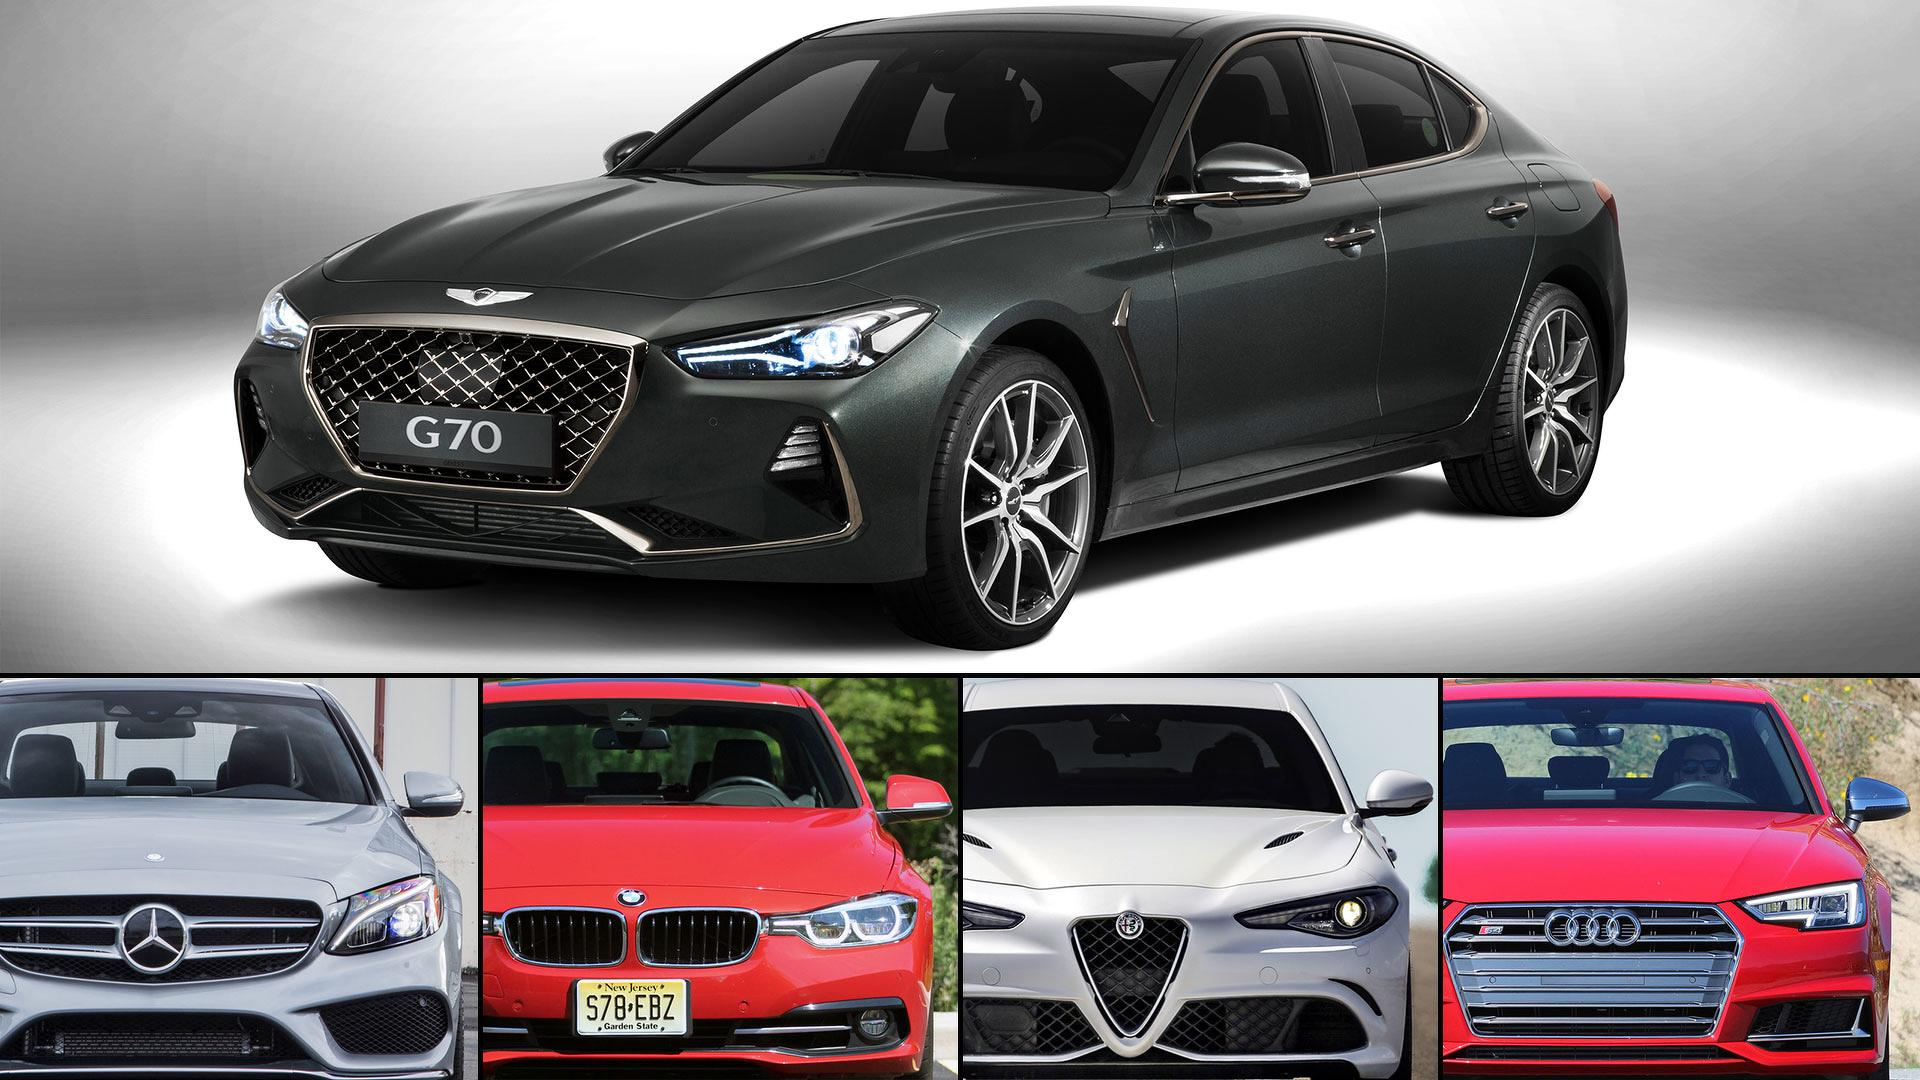 2018 Genesis G70 Versus Its European Rivals